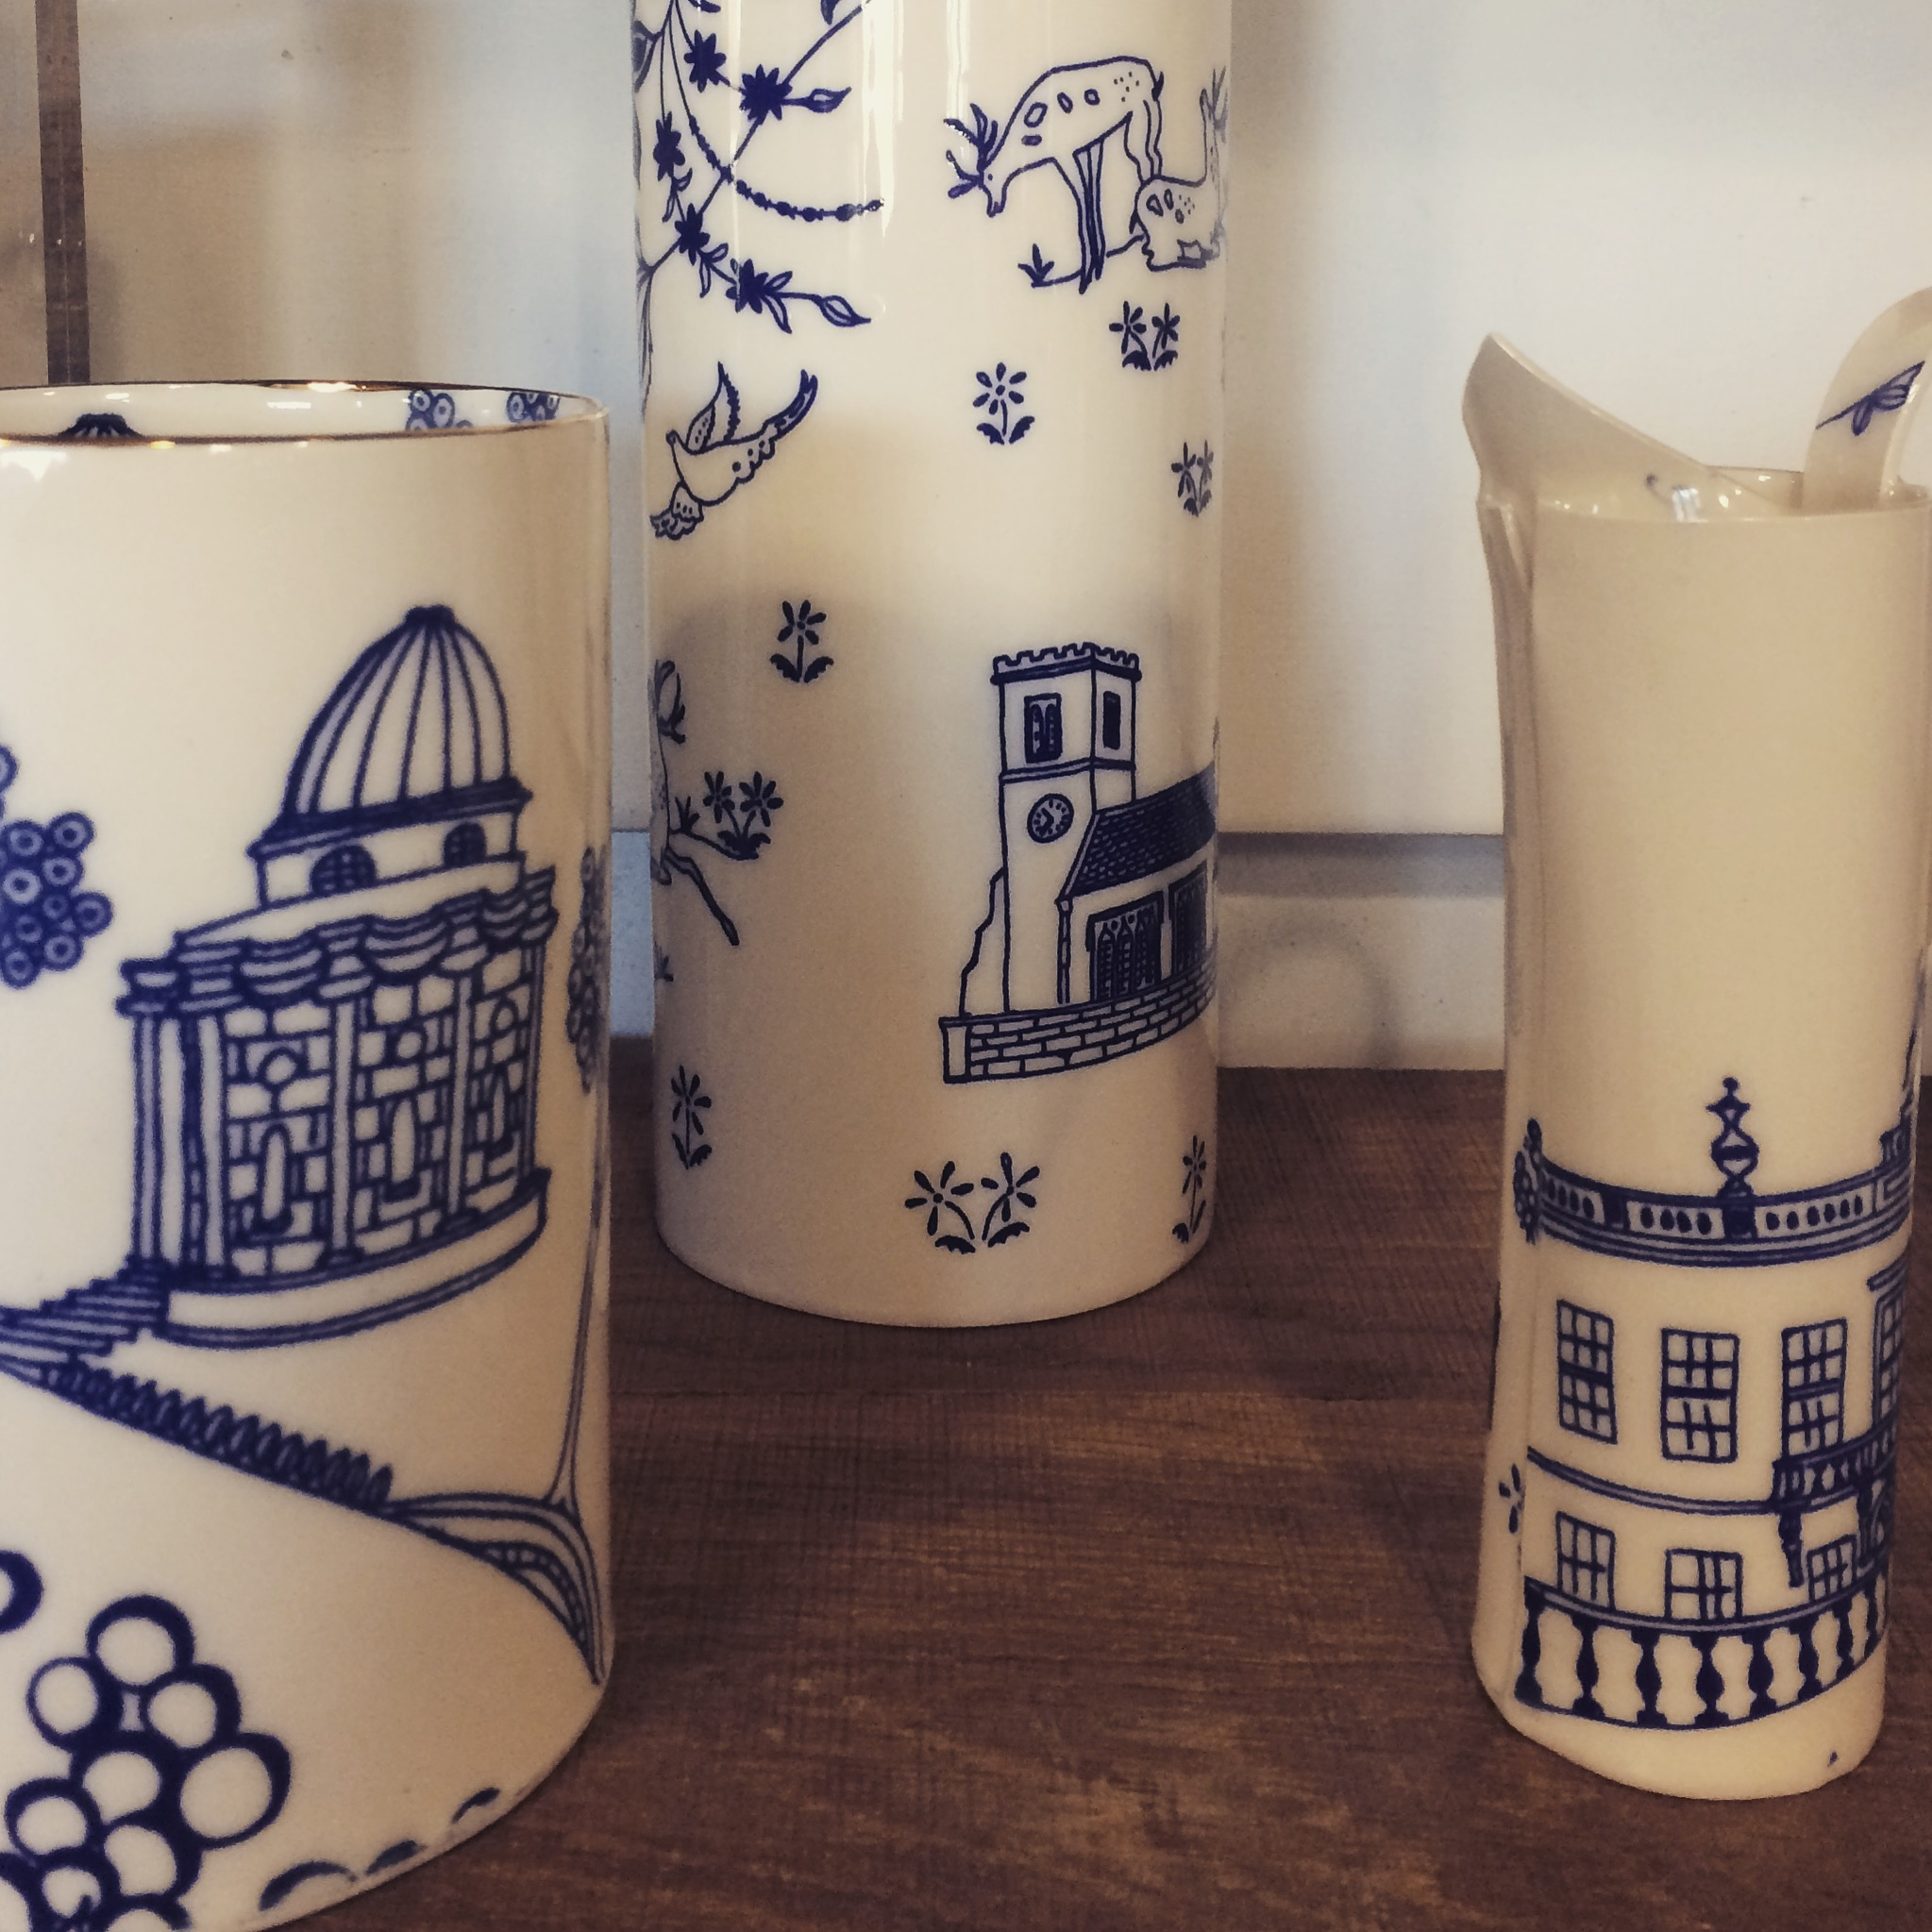 Some beautiful jugs to add some colour